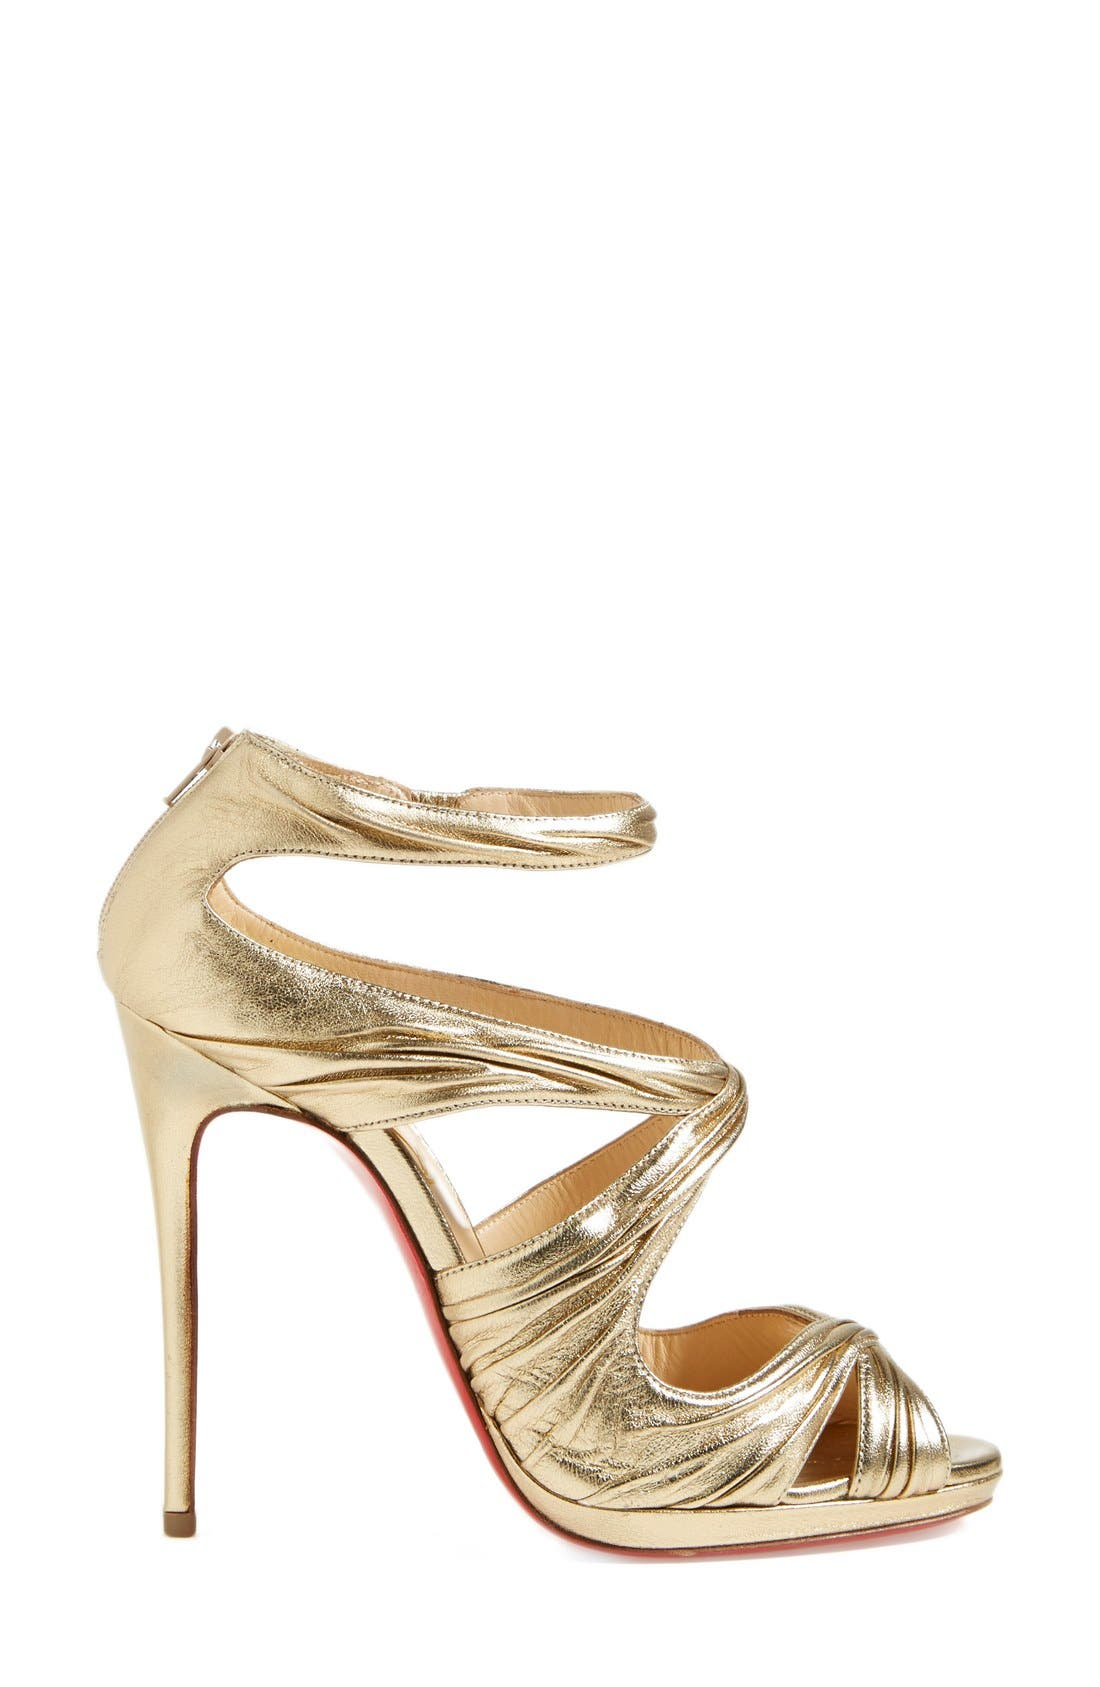 Alternate Image 4  - Christian Louboutin 'Kashou' Metallic Nappa Leather Sandal